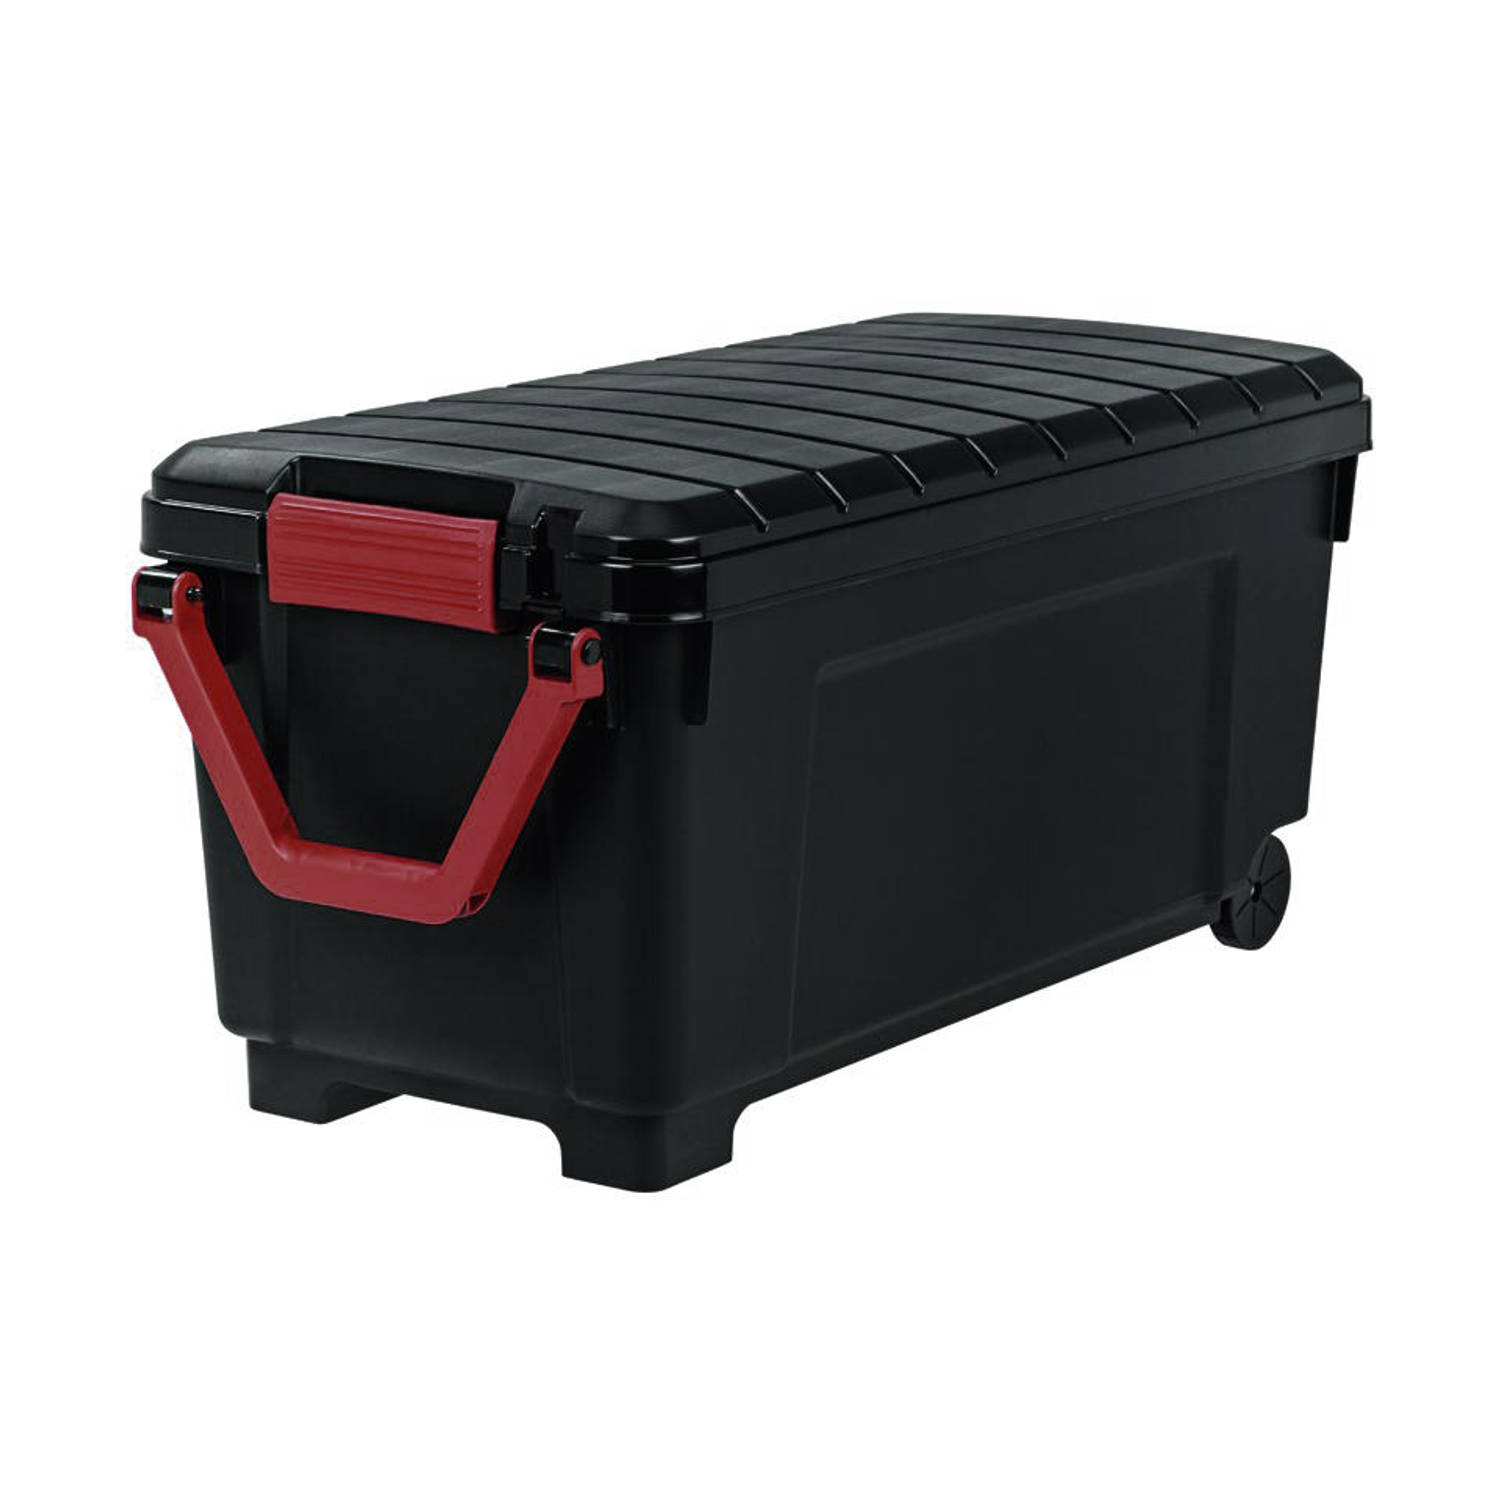 Iris Store It All opbergbox - 170 liter - zwart/rood